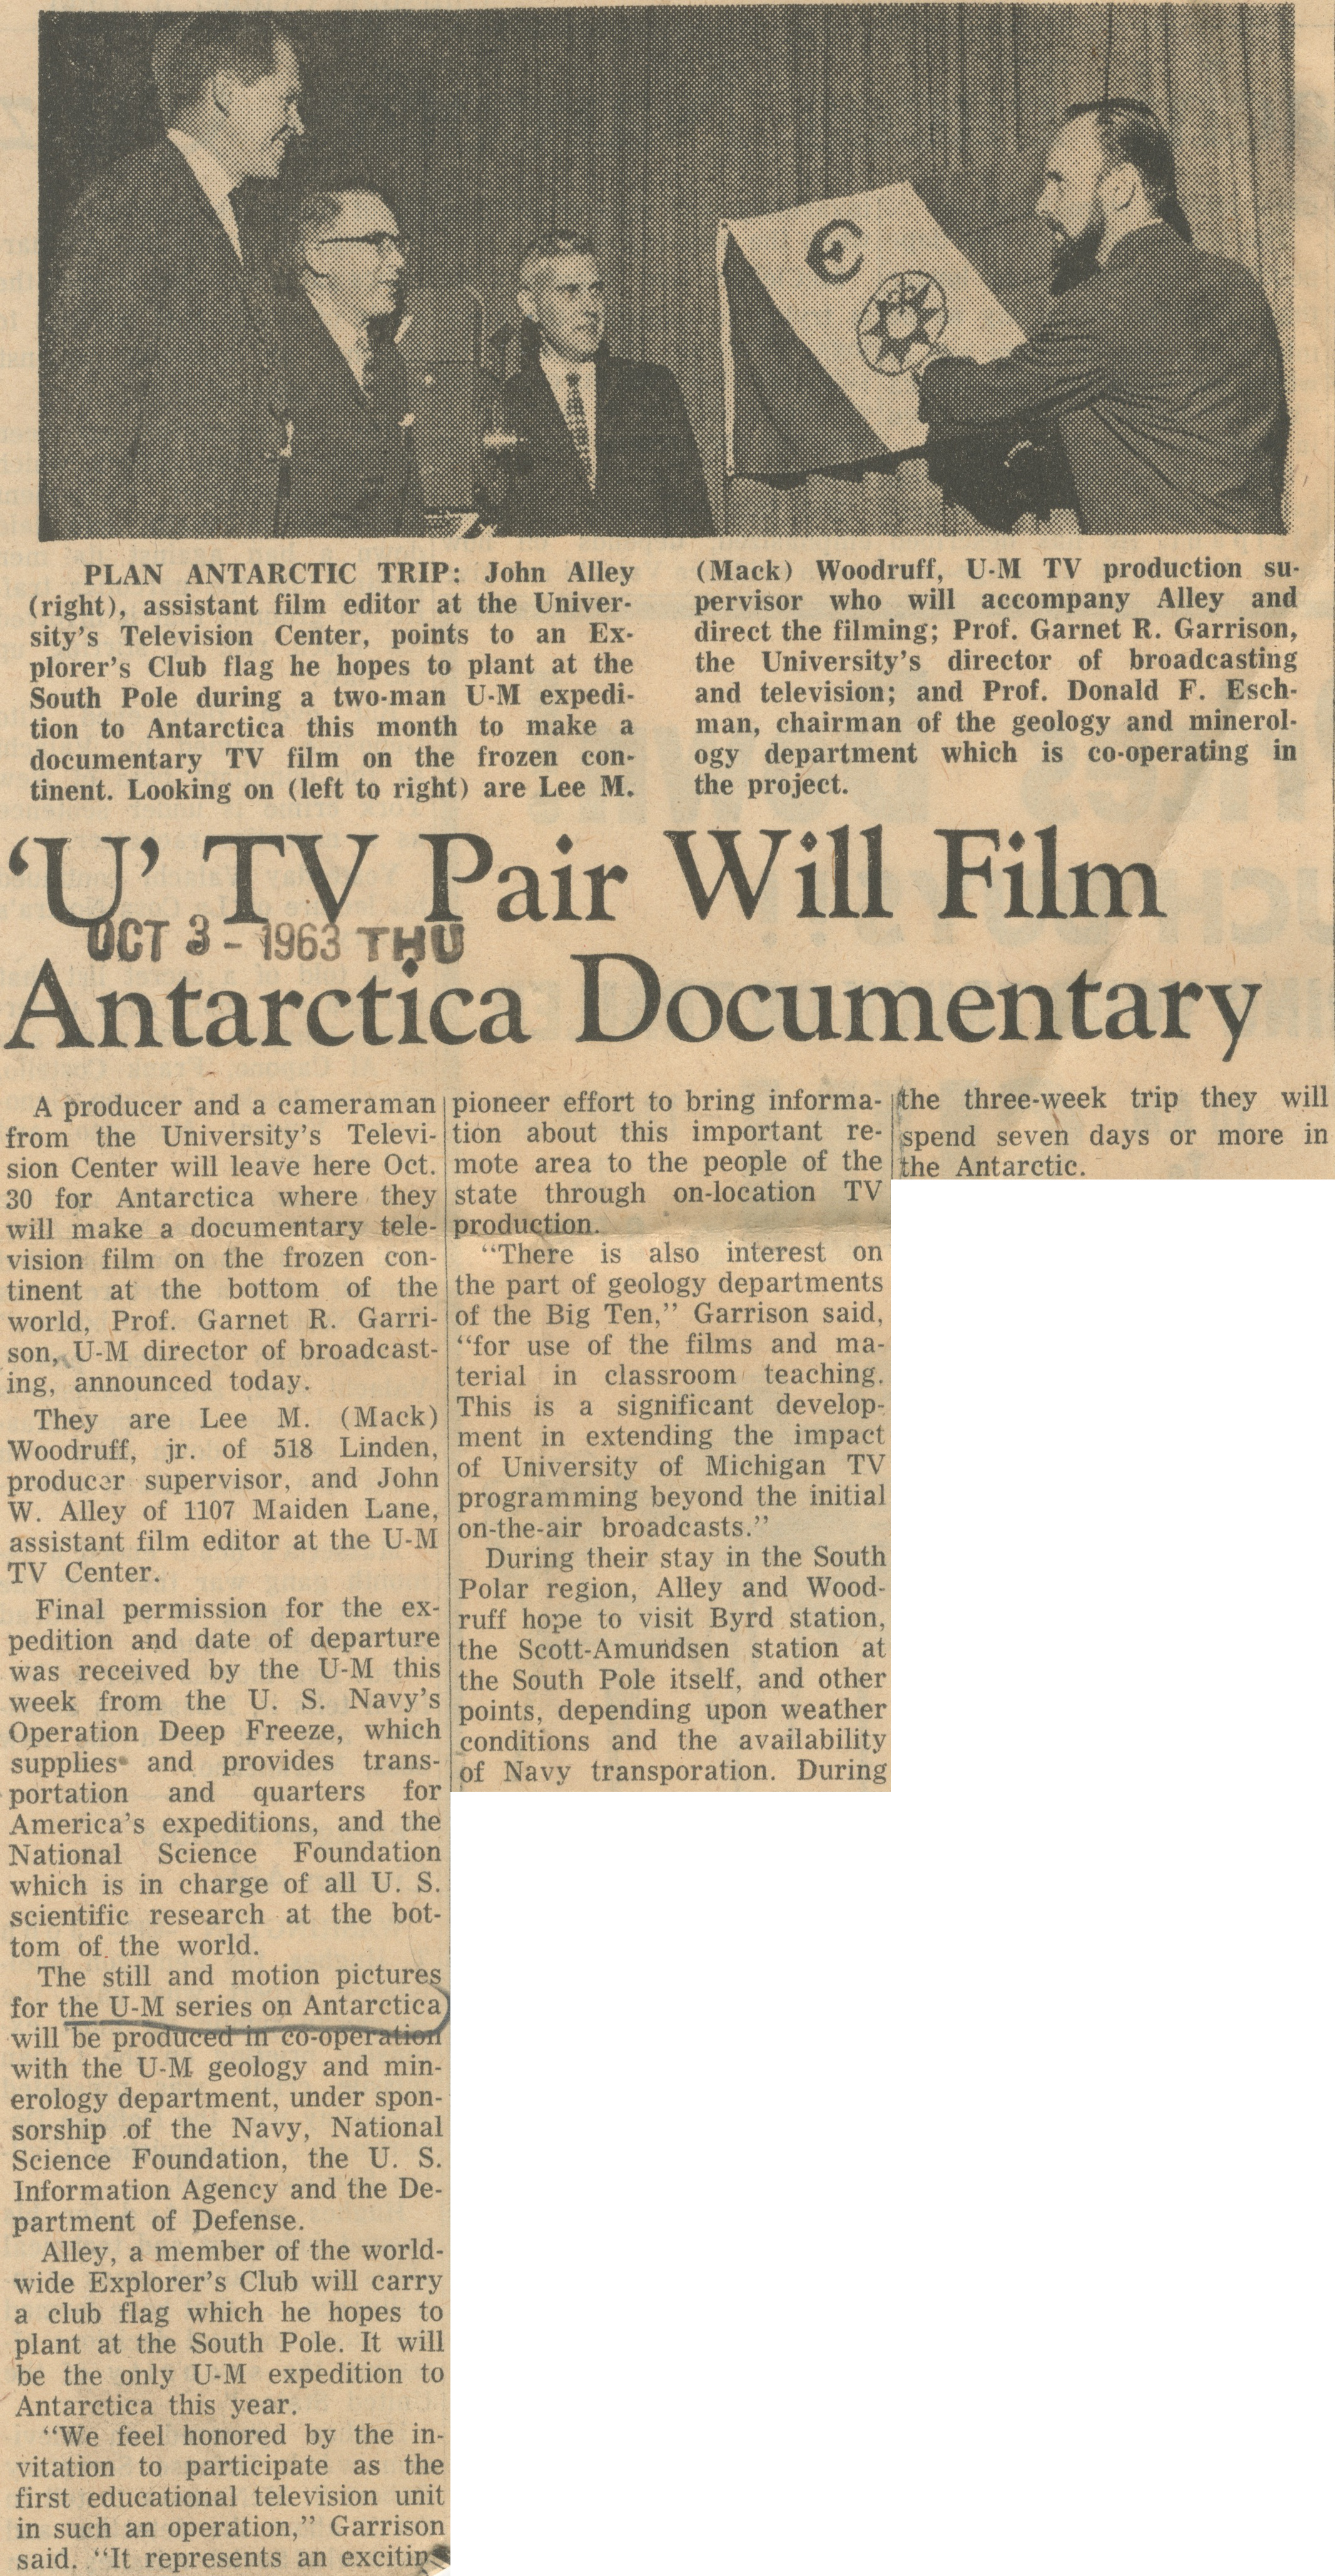 'U' TV Pair Will FIlm Antarctica Documentary image